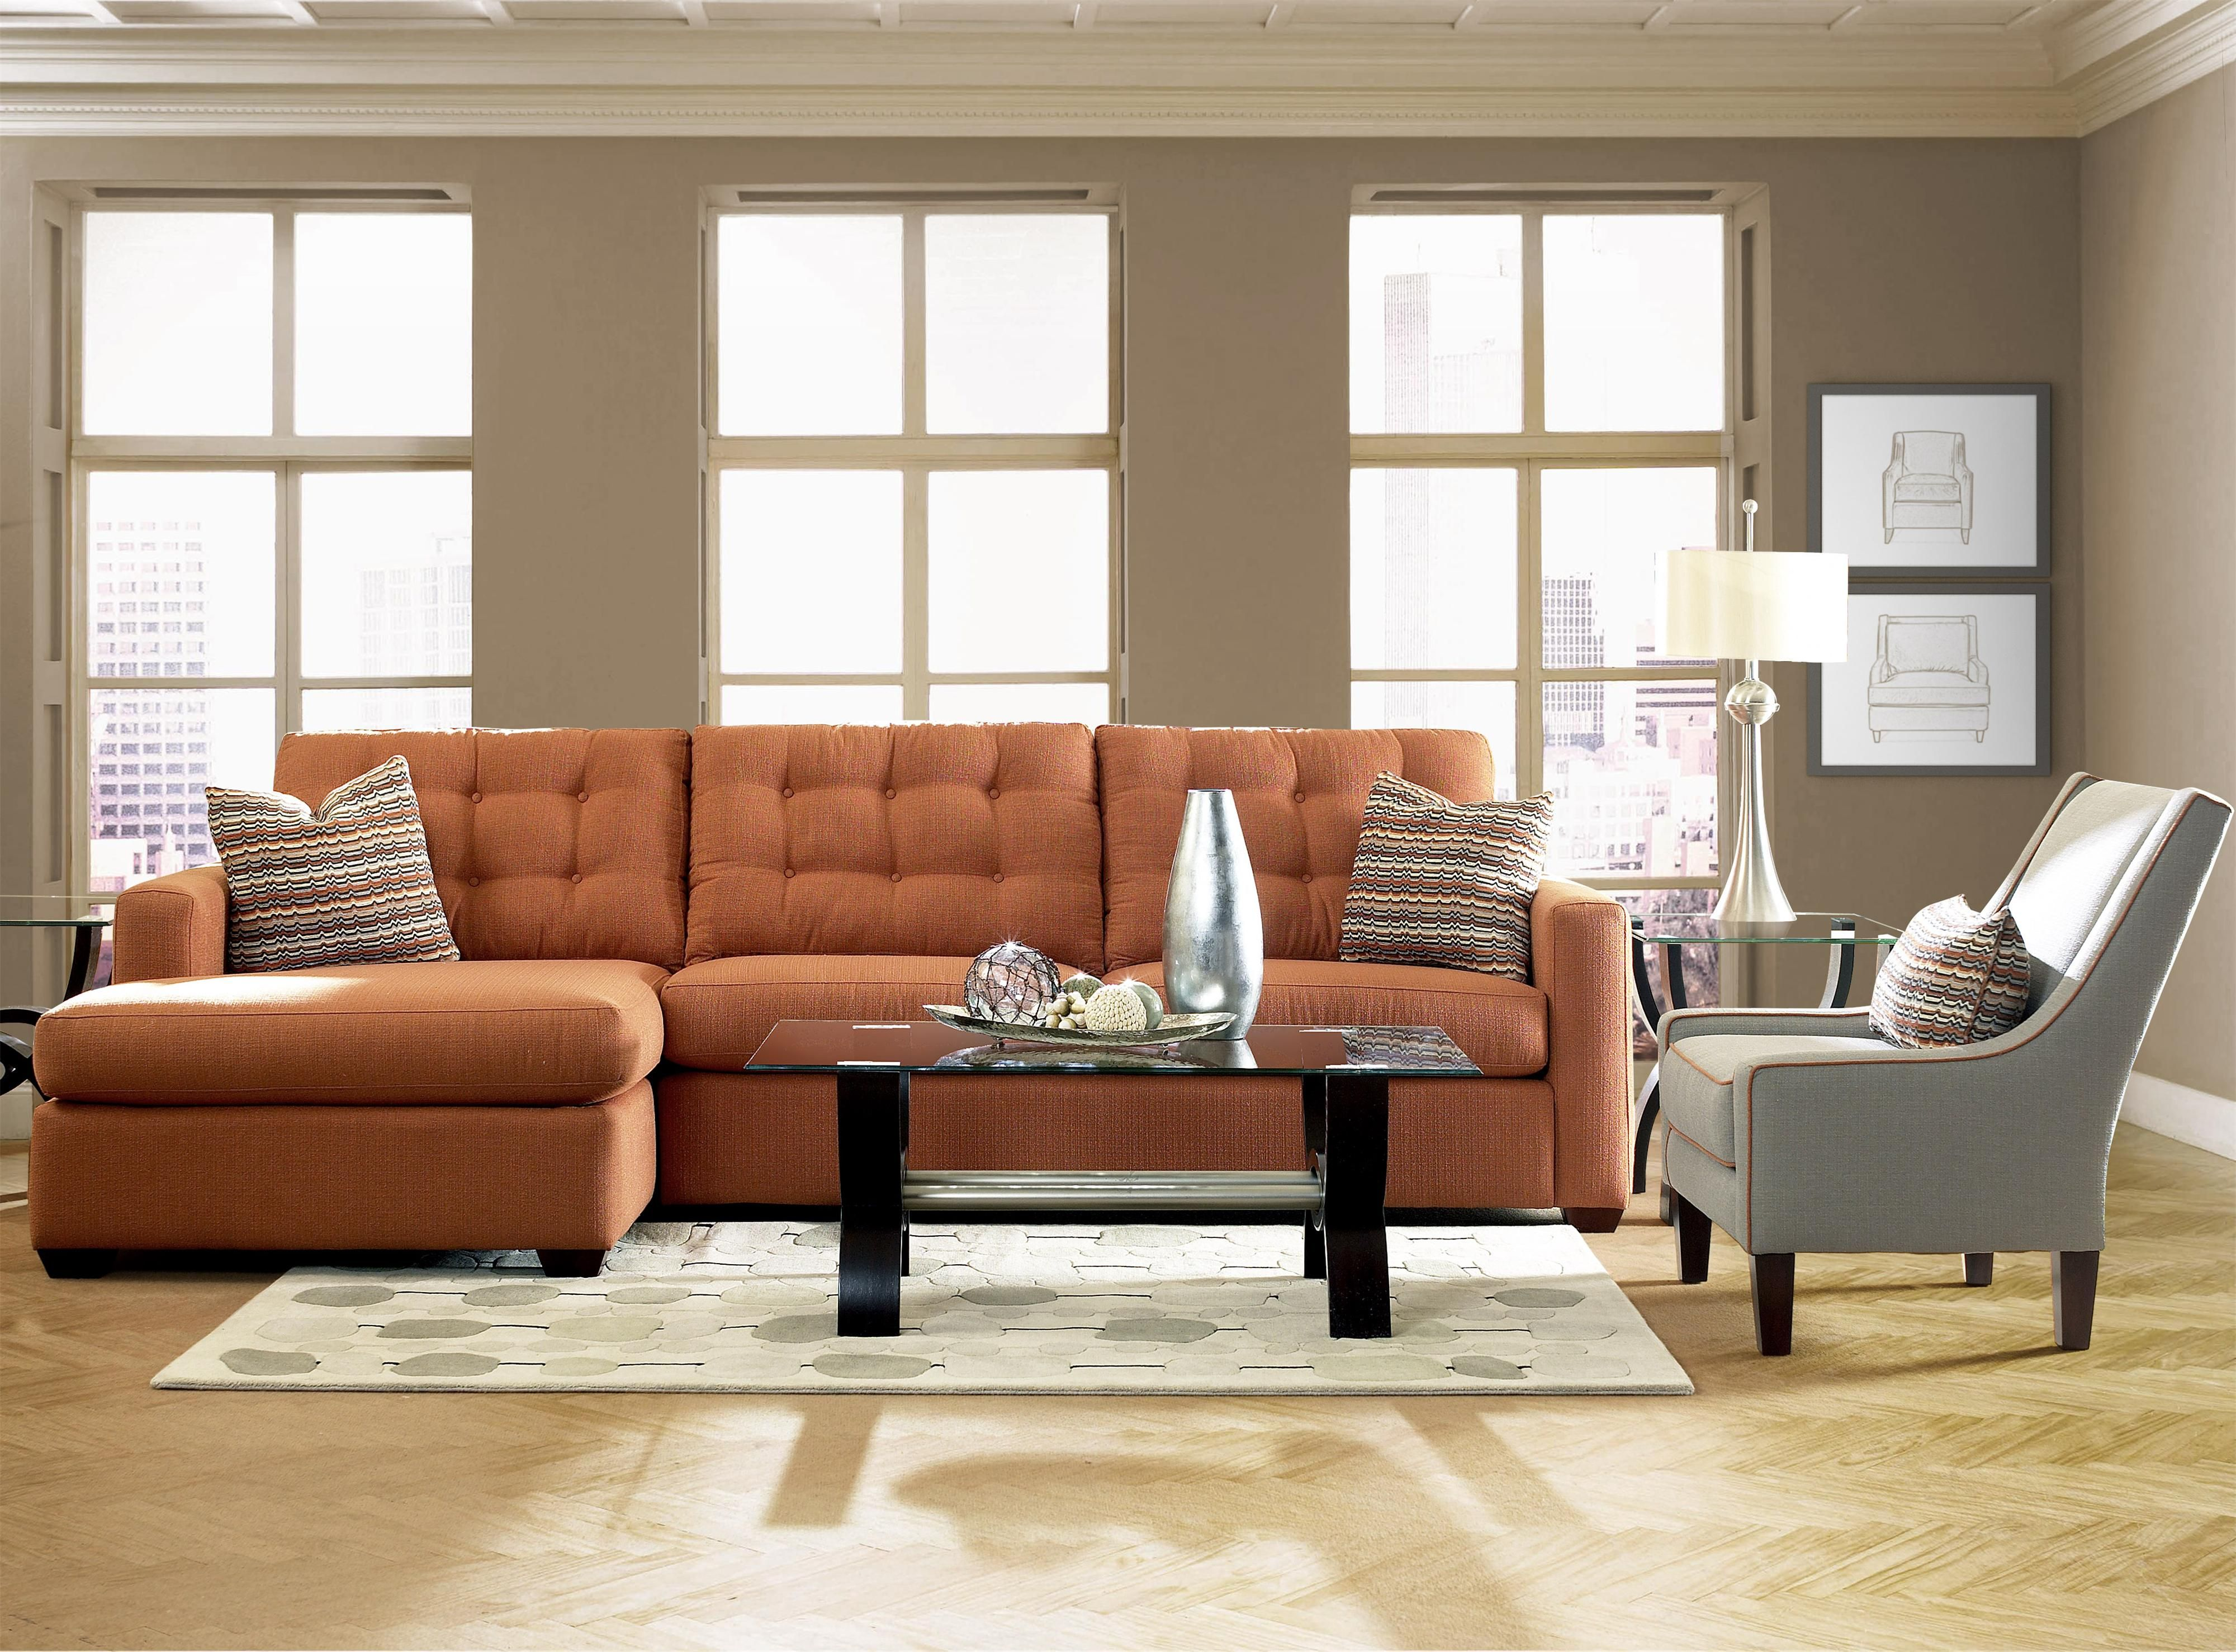 Klaussner Lido Contemporary Sectional Sofa with Left Facing ...